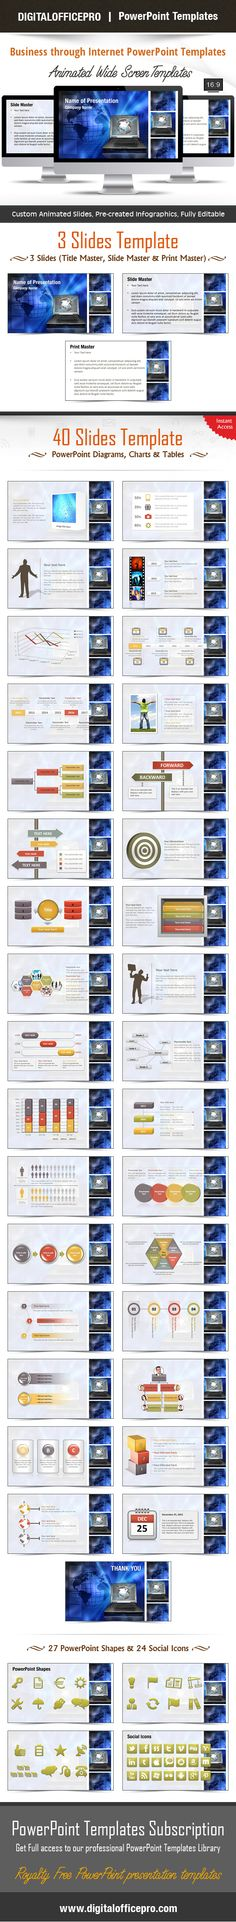 Impress and Engage your audience with Business through Internet PowerPoint Template and Business through Internet PowerPoint Backgrounds from DigitalOfficePro. Each template comes with a set of PowerPoint Diagrams, Charts & Shapes and are available for instant download.